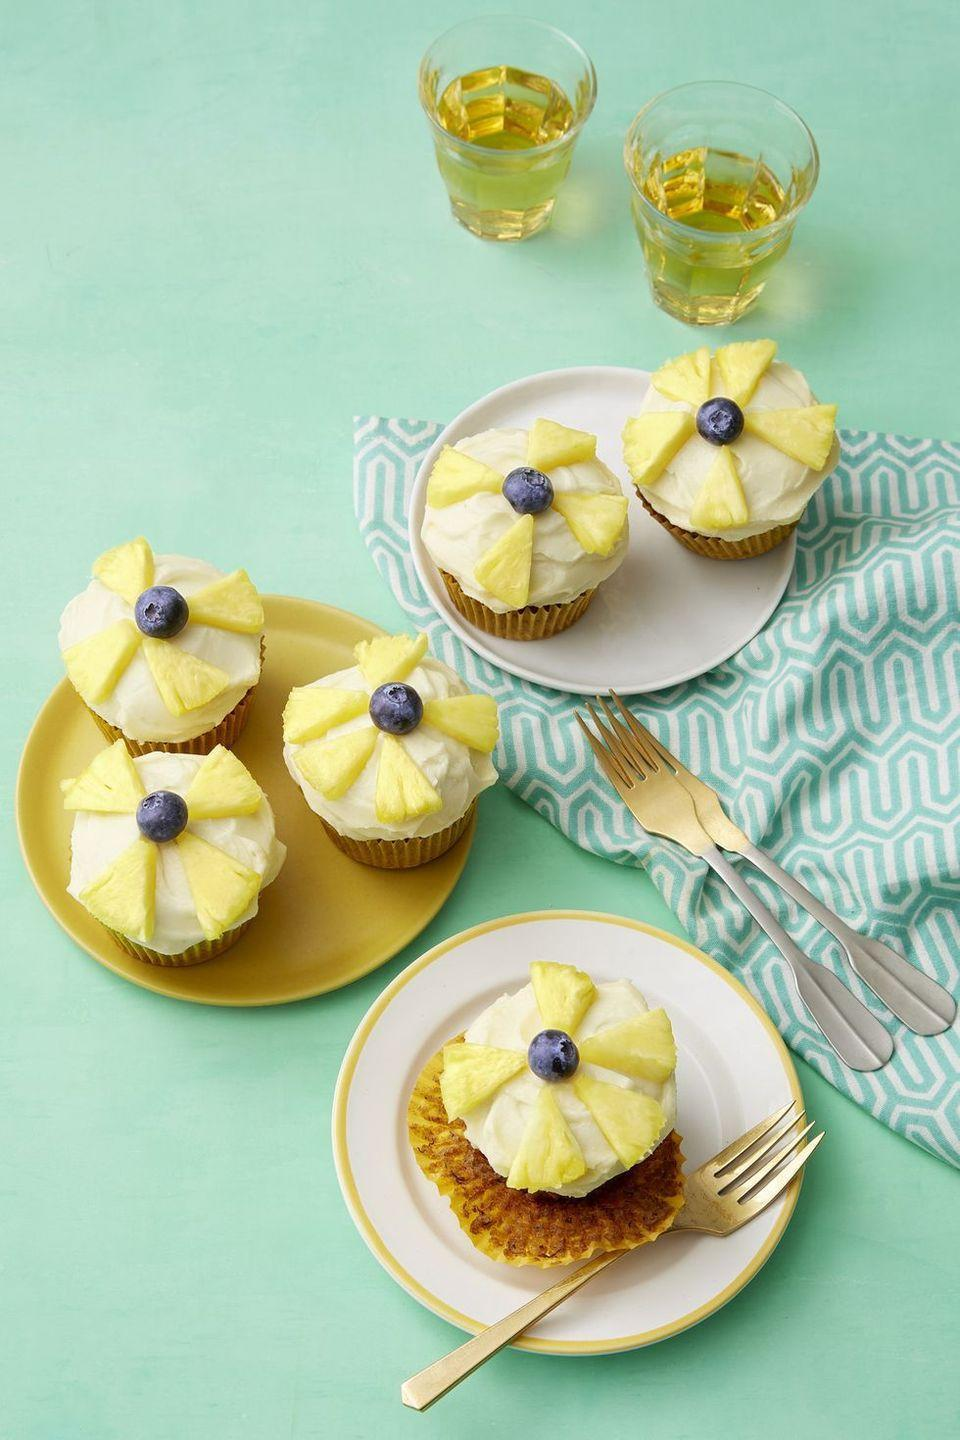 """<p>Jazz up this southern speciality with pineapple and blueberry flowers. </p><p><strong><a href=""""https://www.womansday.com/food-recipes/food-drinks/a19123934/hummingbird-cupcake-recipe/"""" rel=""""nofollow noopener"""" target=""""_blank"""" data-ylk=""""slk:Get the recipe."""" class=""""link rapid-noclick-resp"""">Get the recipe.</a></strong></p>"""